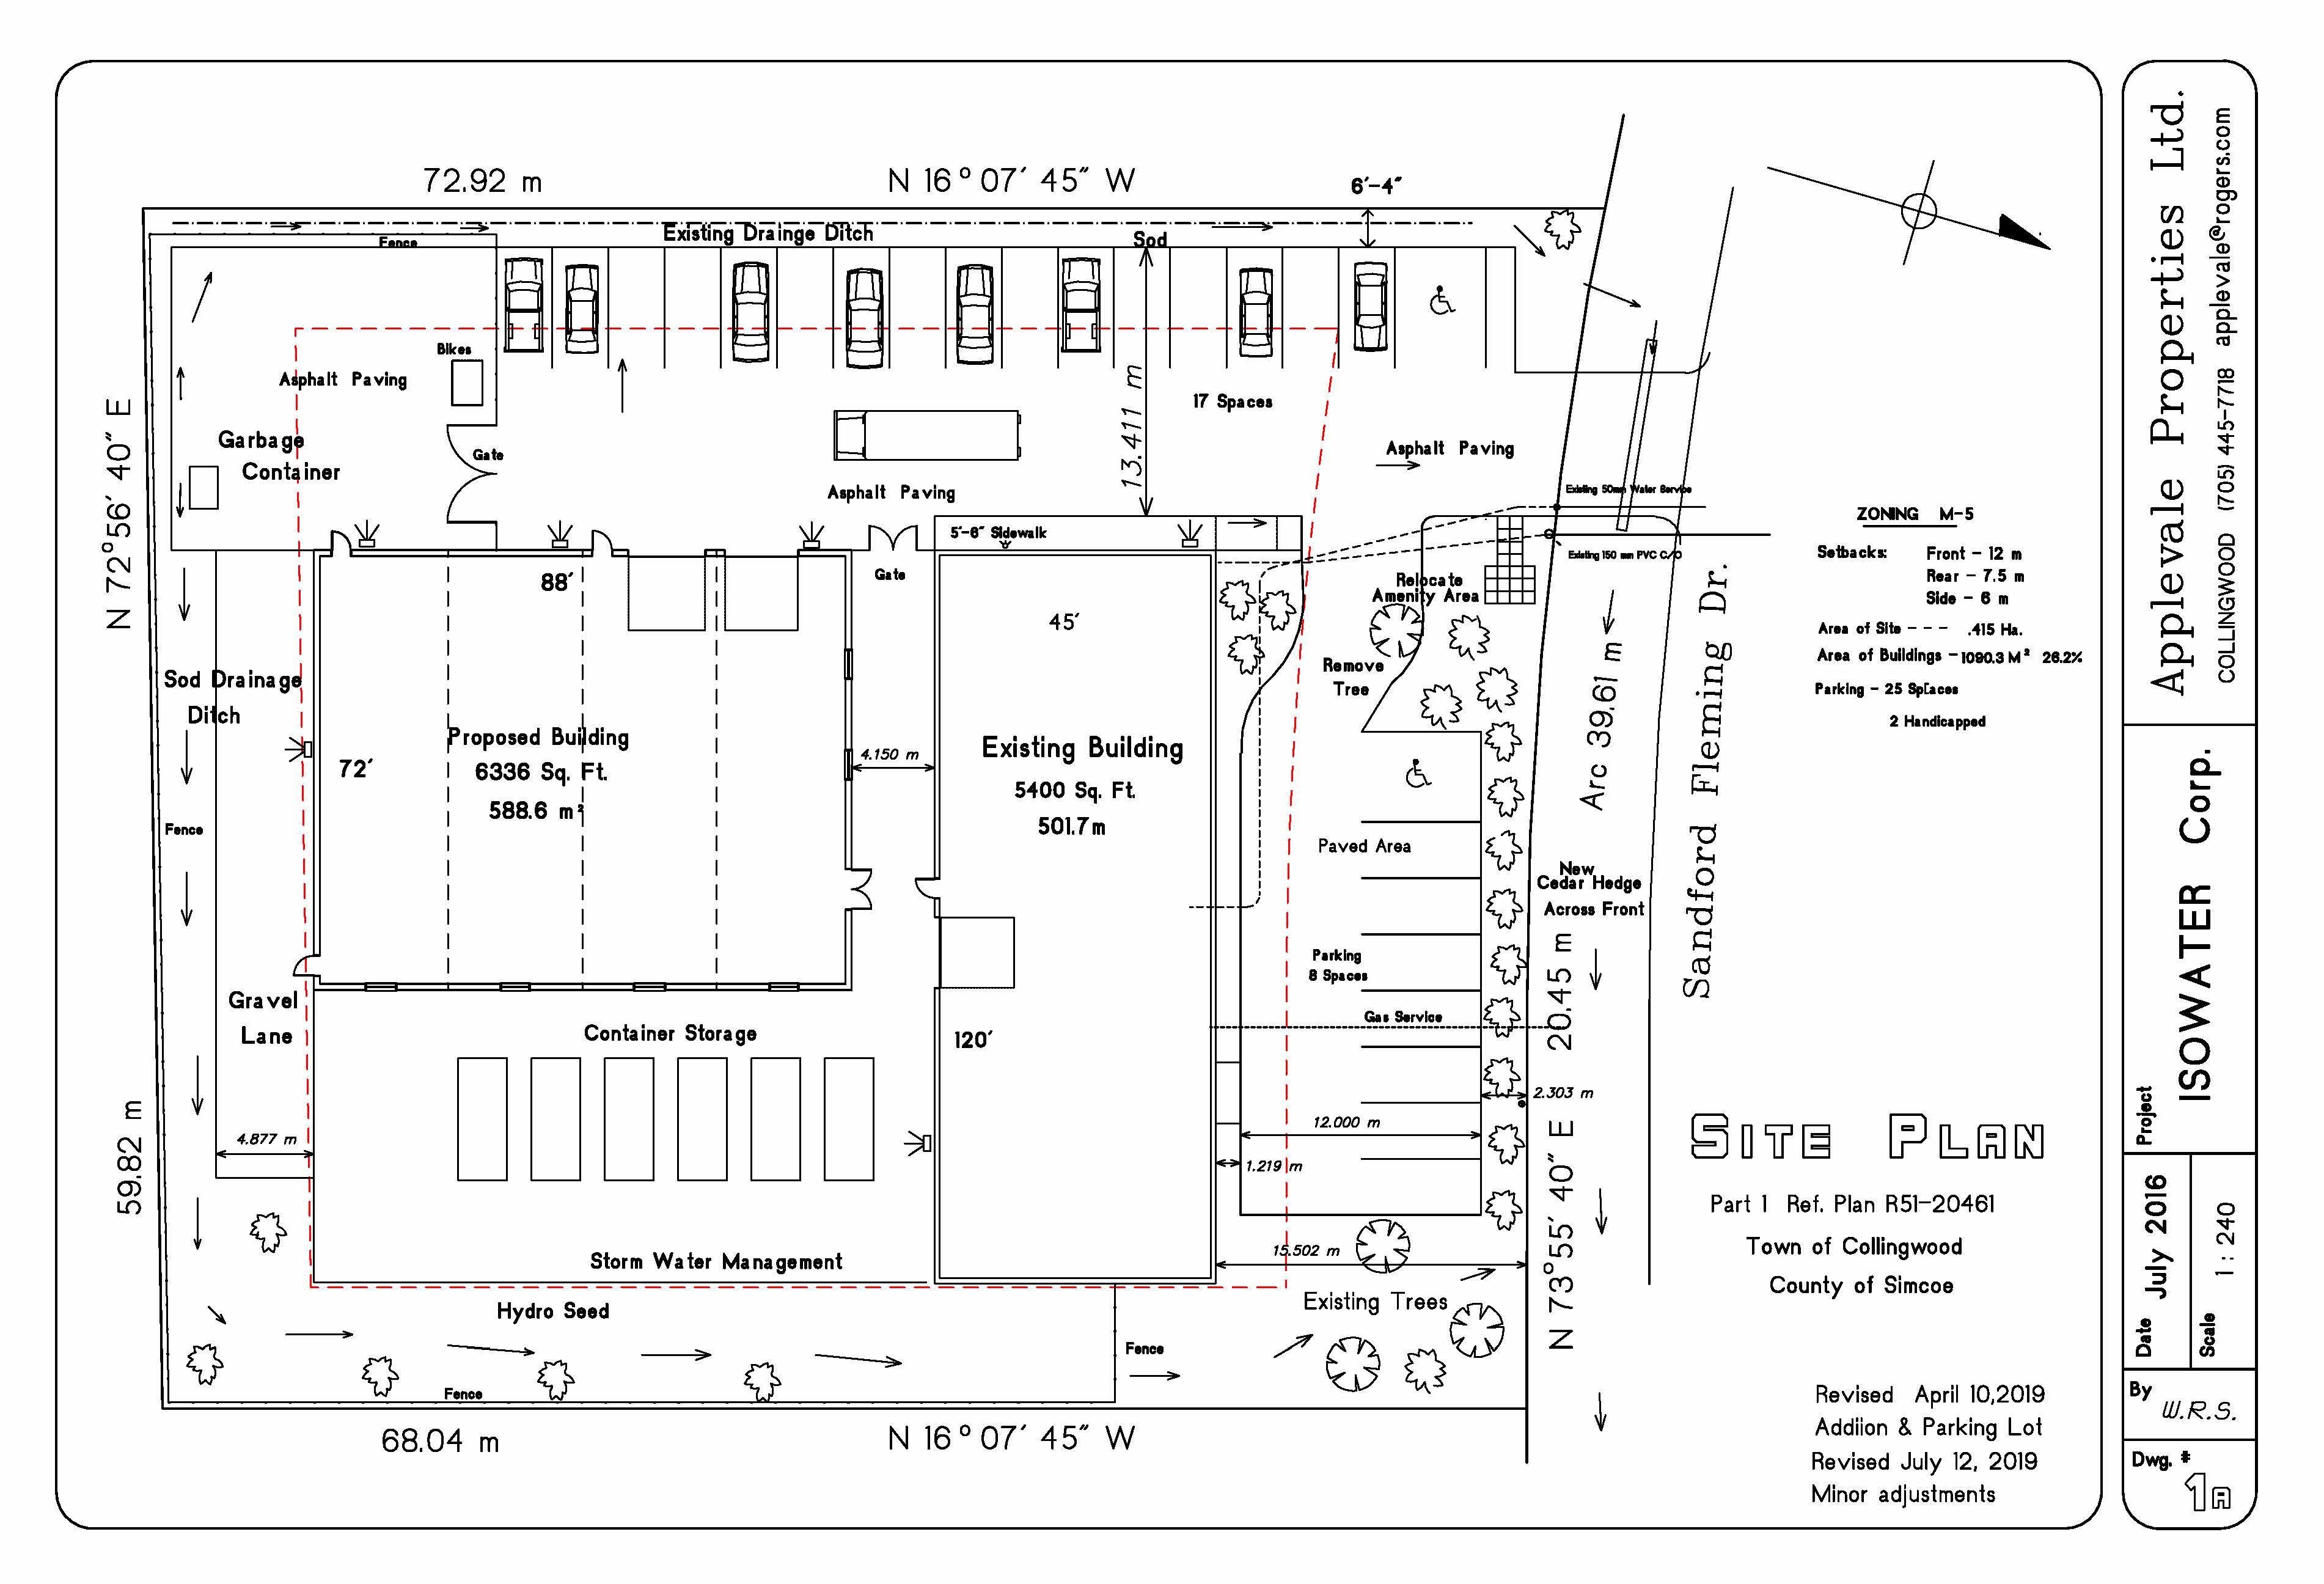 Site Plan for Isowater Industrial Building at 40 Sandford Fleming Drive Collingwood, ON